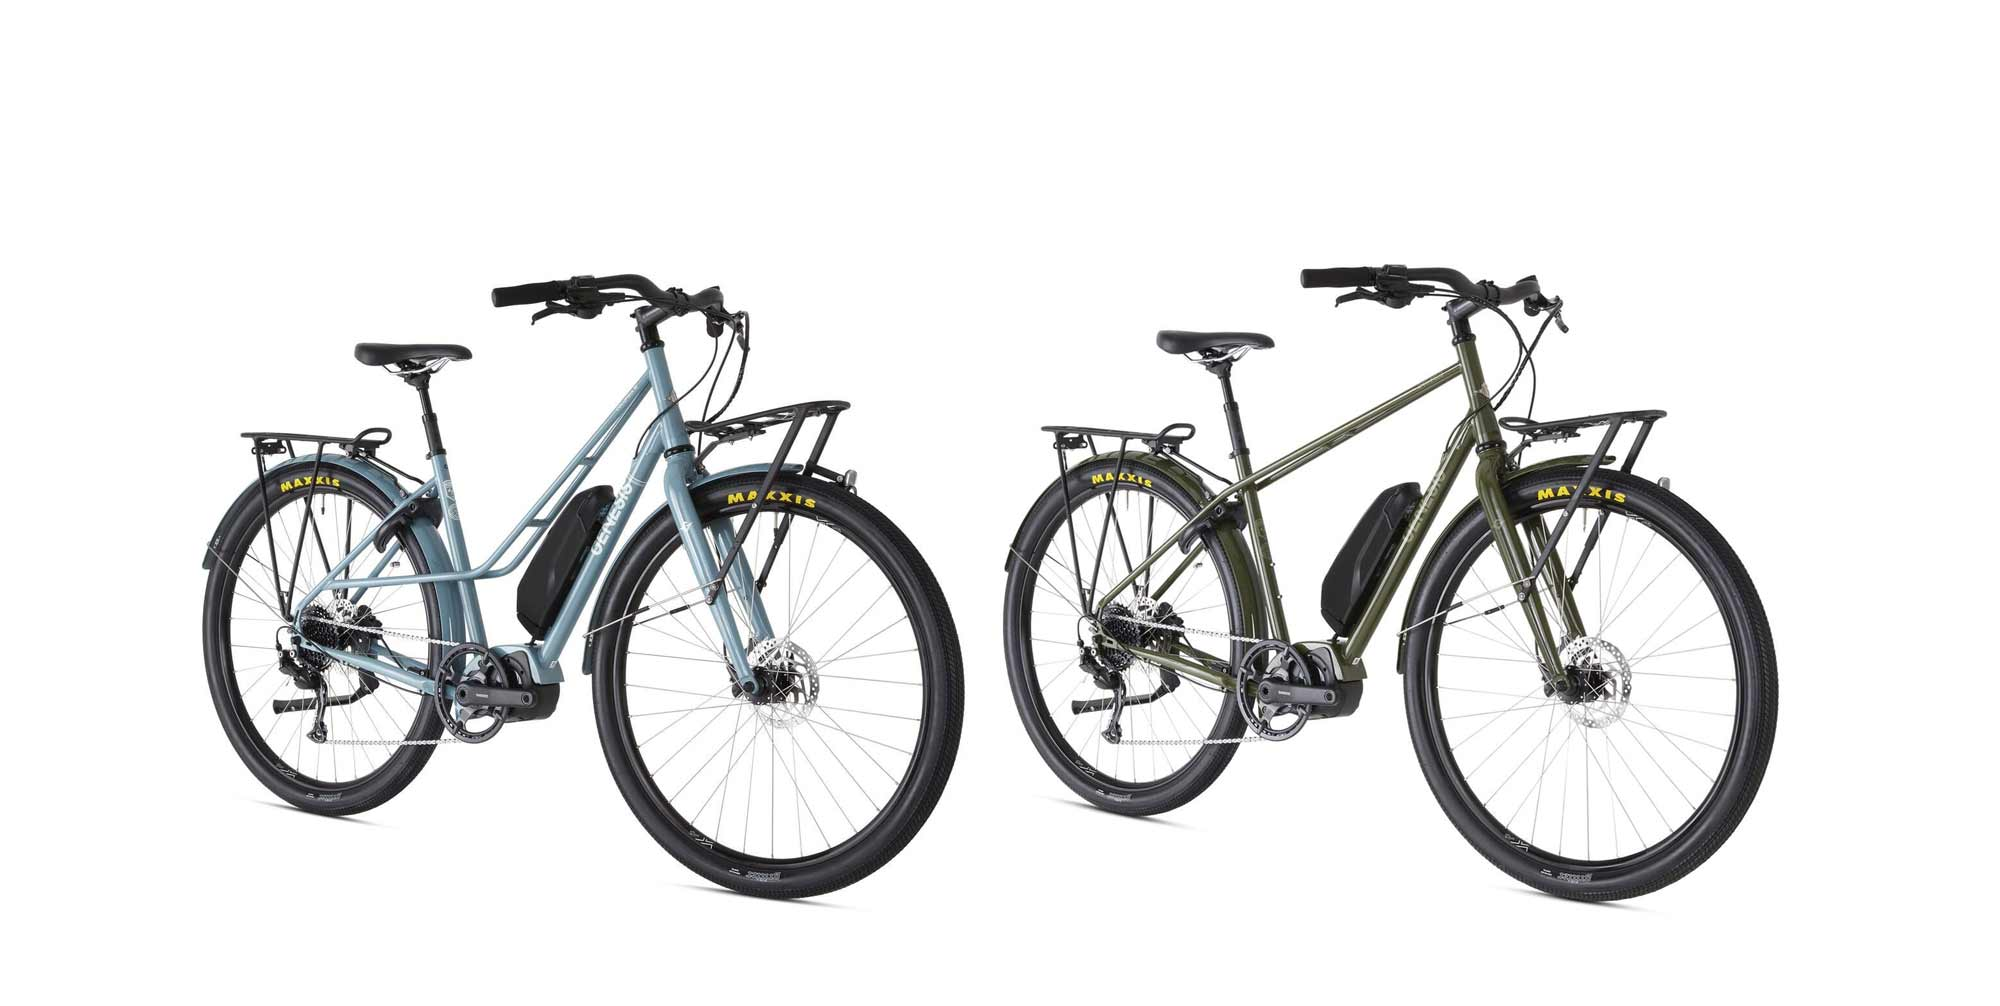 Introducing: Our first E-bikes